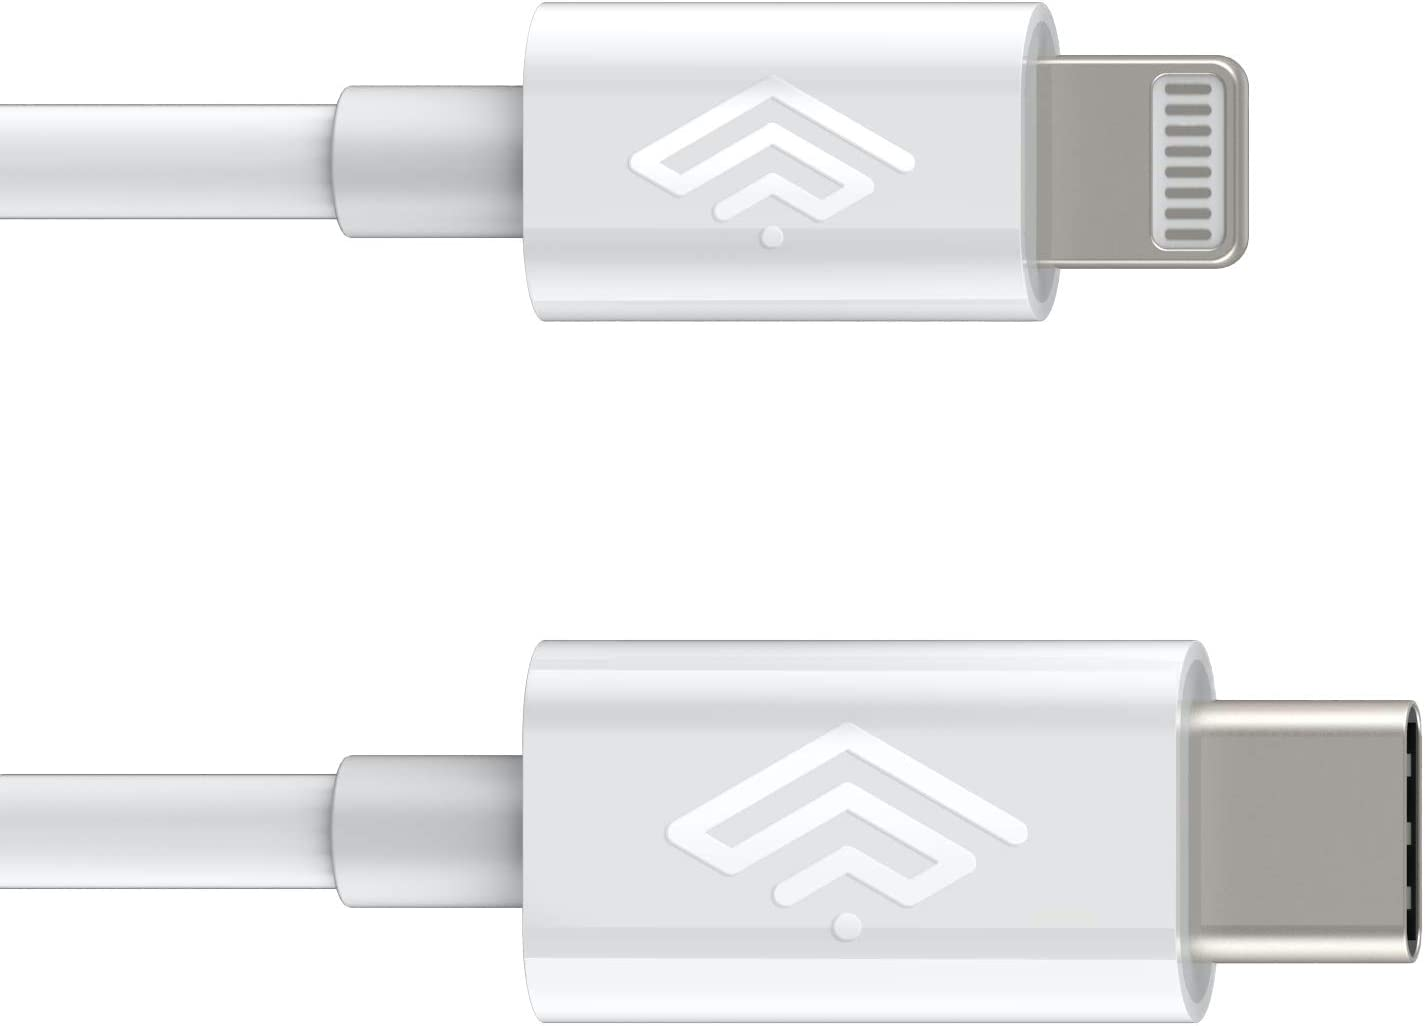 Apple Certified iPhone Lightning USBC Cable 3 ft - for iPhone 12 Pro Max Mini 11 X XS XR XS Max 8 Plus 8 7 Plus 7 iPad Pro iPad Air - Charge & Sync - 2.4a Rapid Power - Travel Ready - White